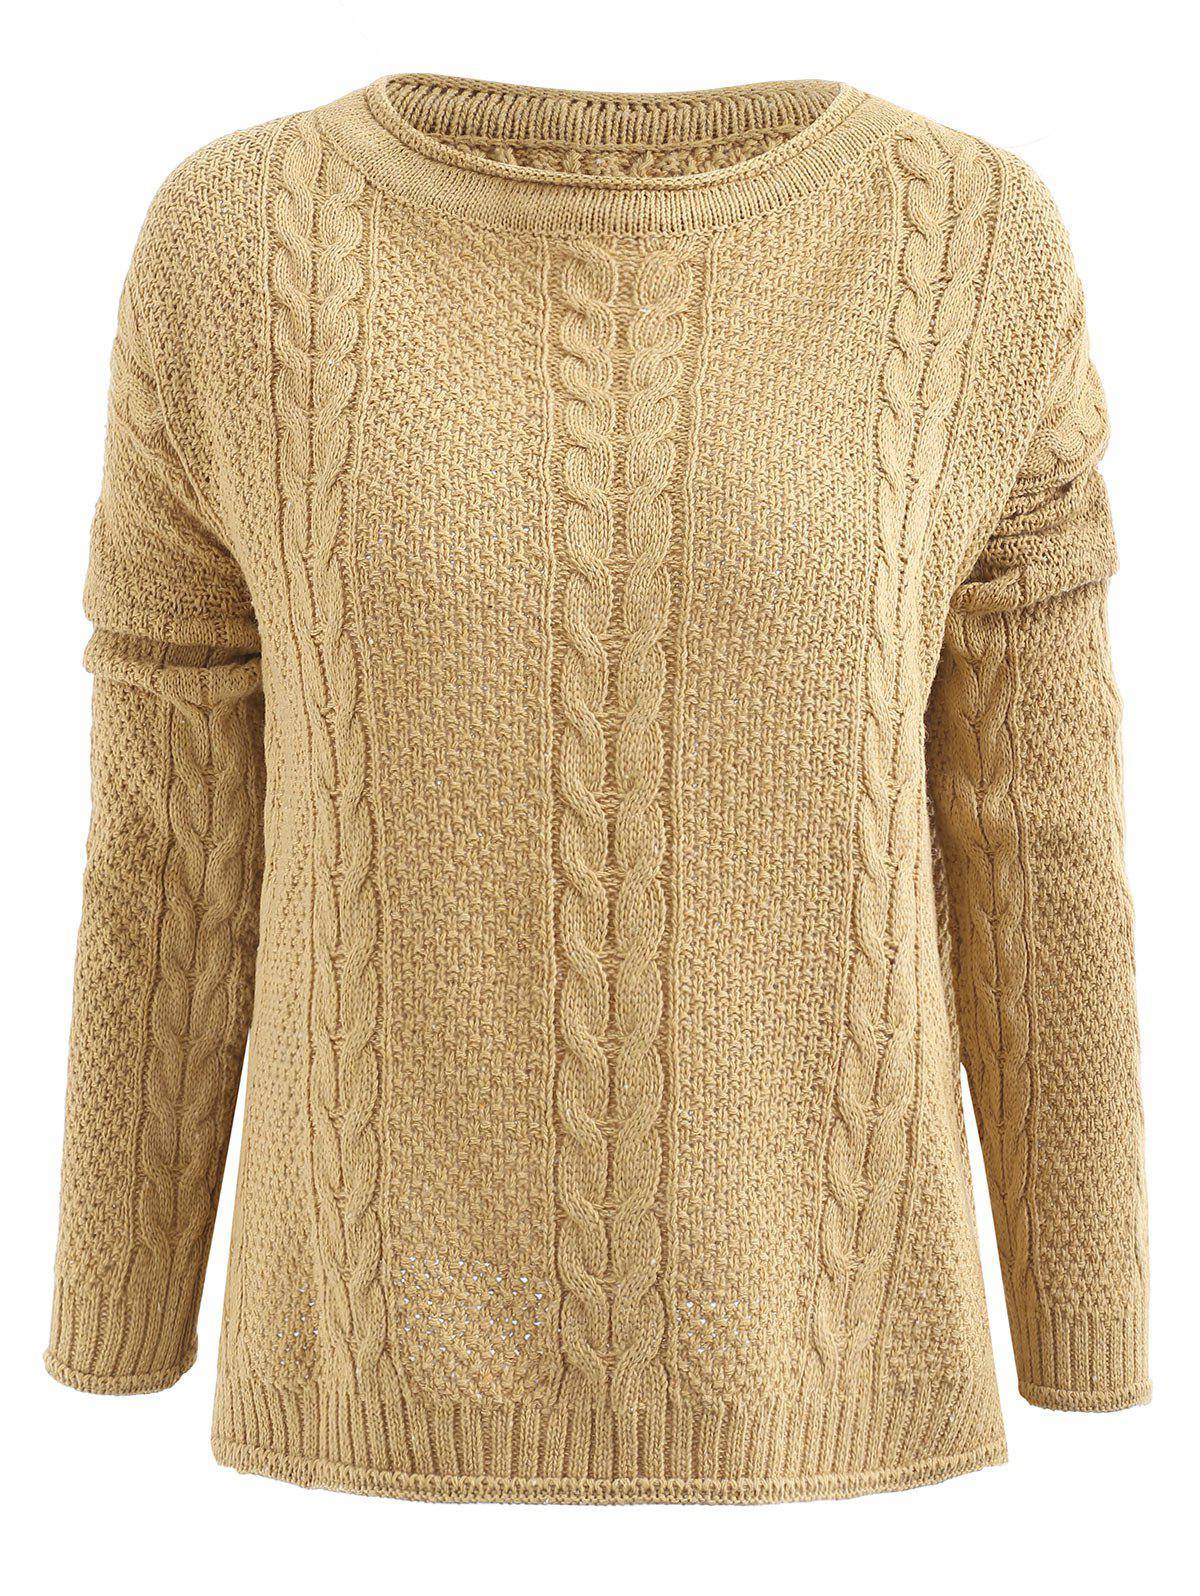 d05e1a3934 Side Slit Cable Knit Pullover Sweater - One Size